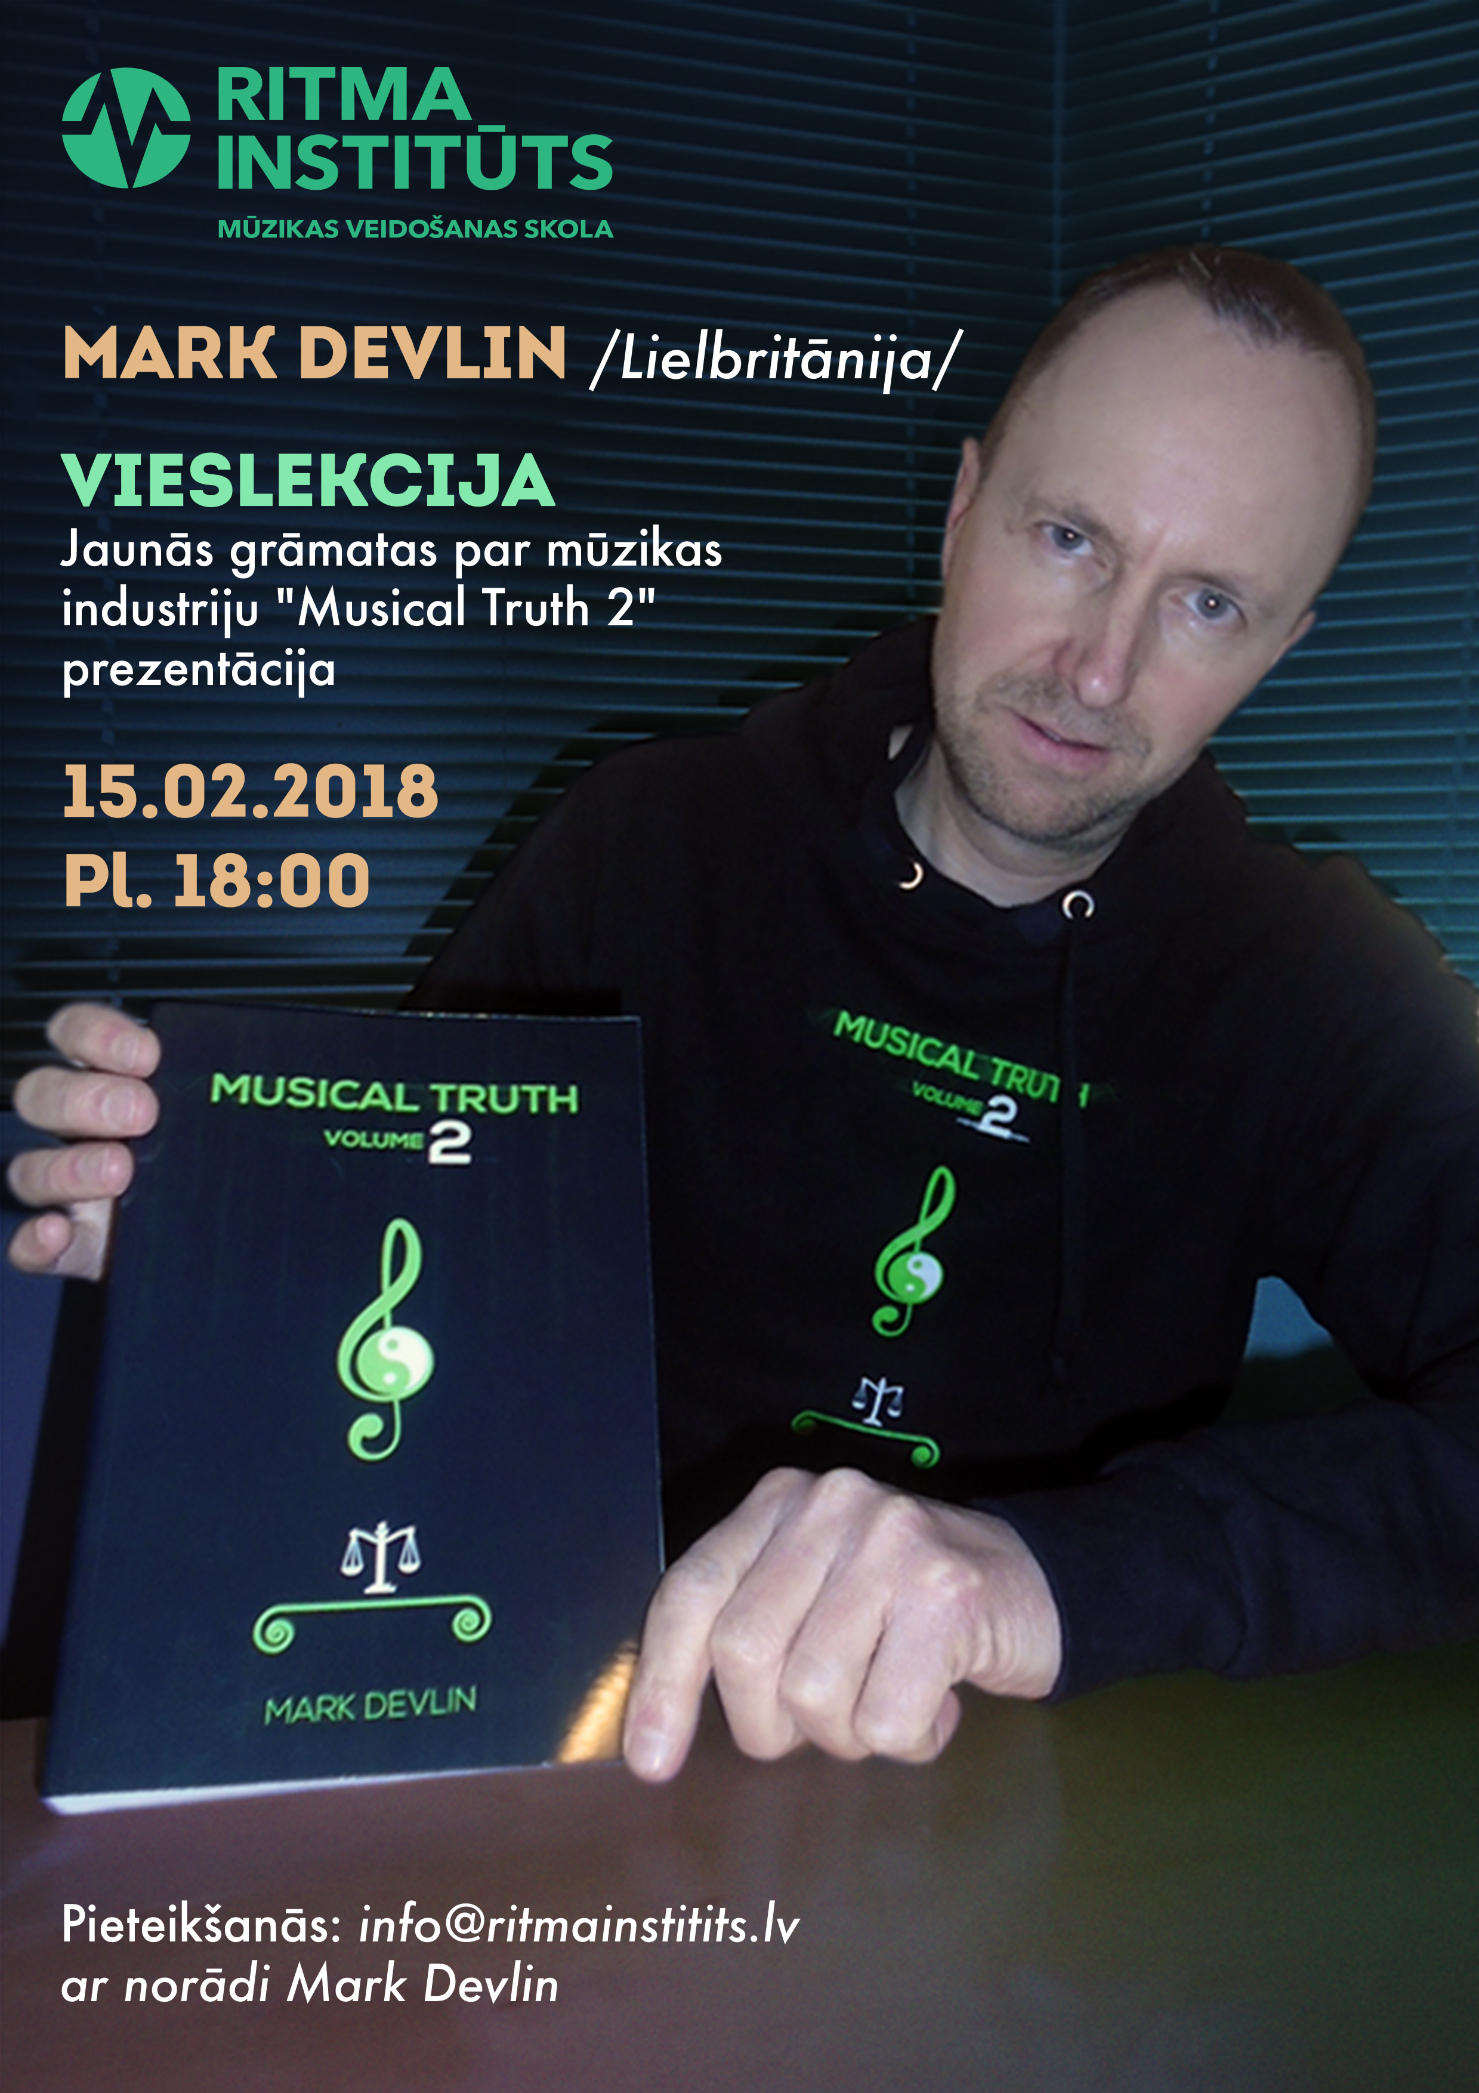 Ritma_instituts_vieslekcija-Mark_Devlin.jpg